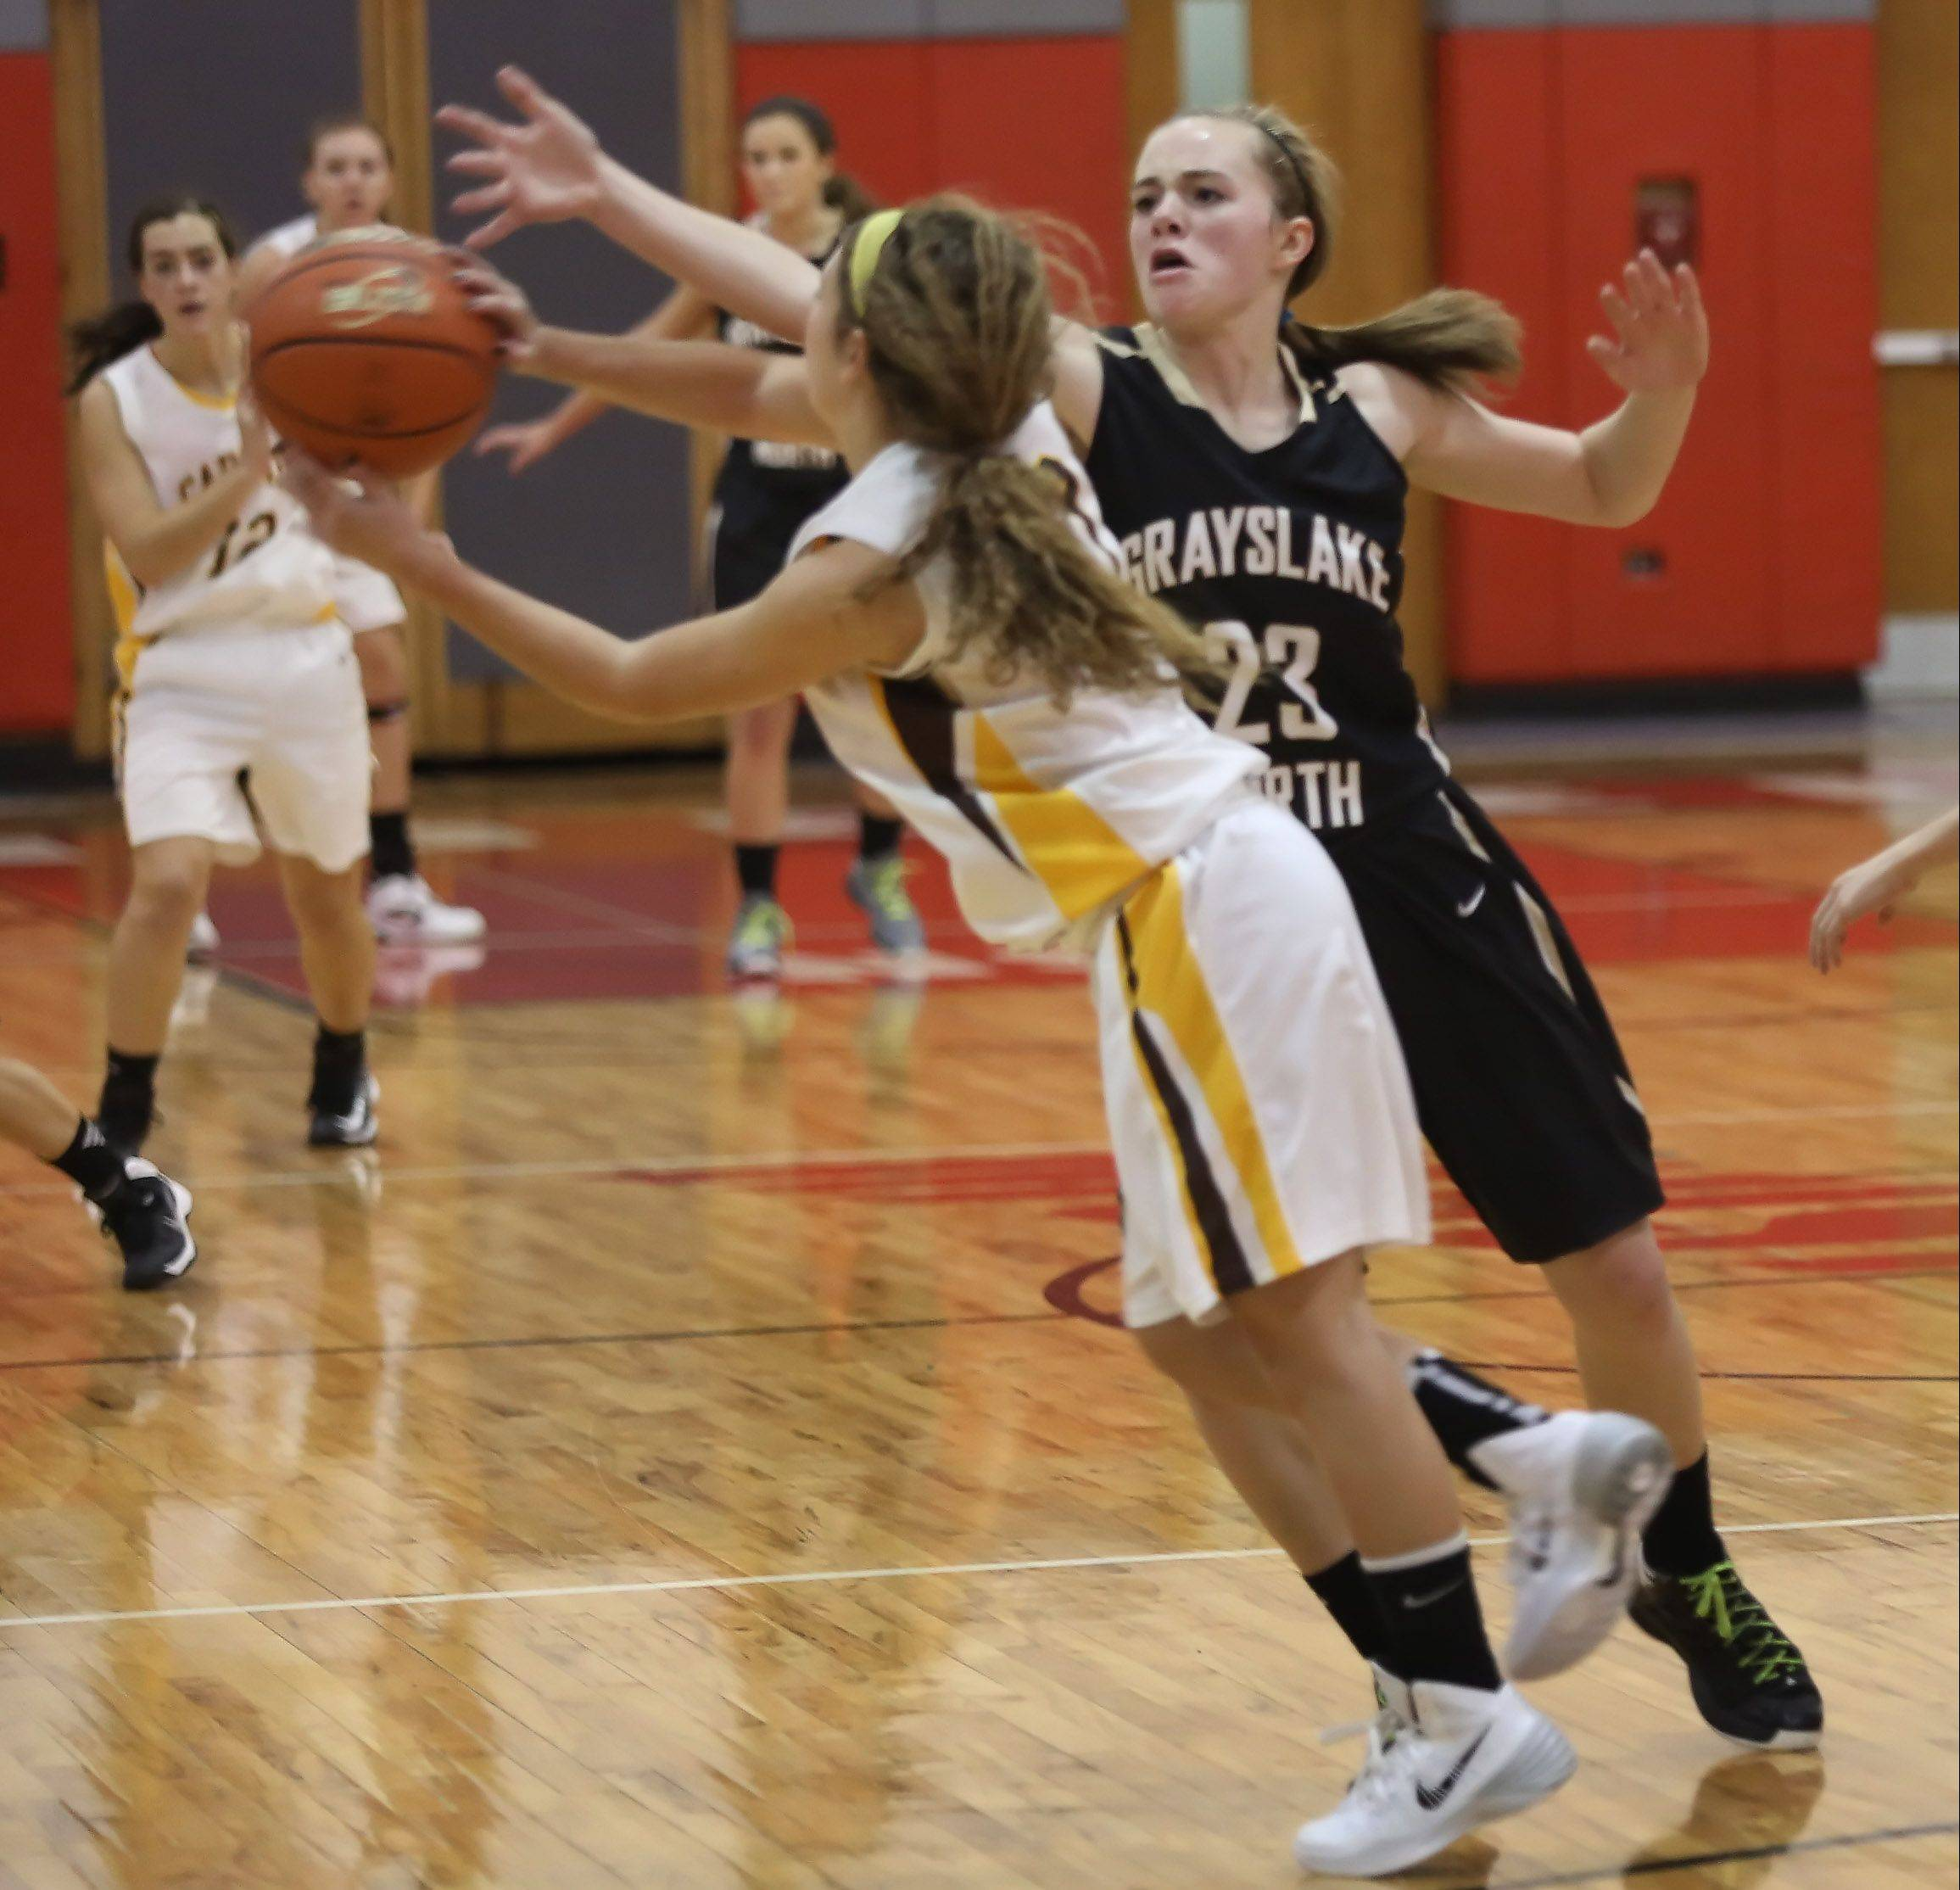 Grayslake North guard Sydney Lovitsch tries to block the pass by Carmel guard Sam Melillo during Monday�s in the Mundelein tournament.